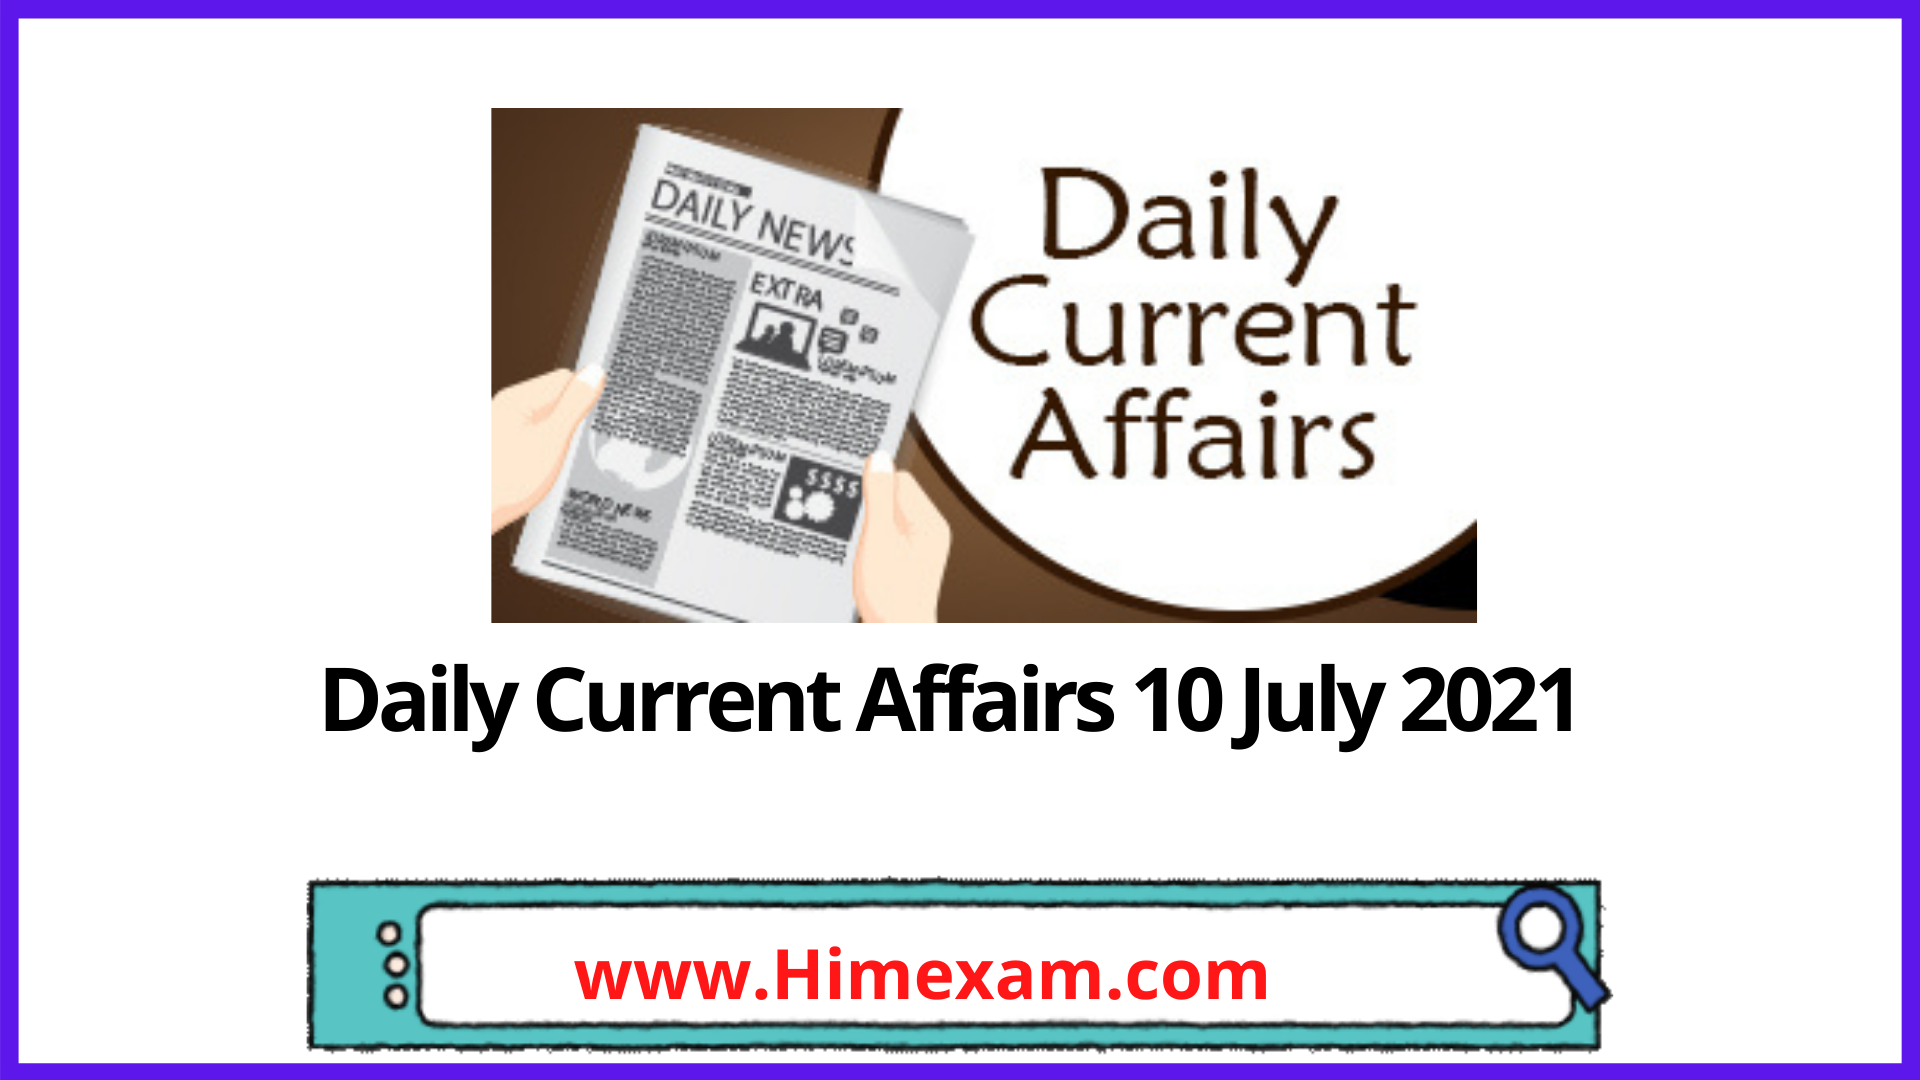 Daily Current Affairs 10 July 2021